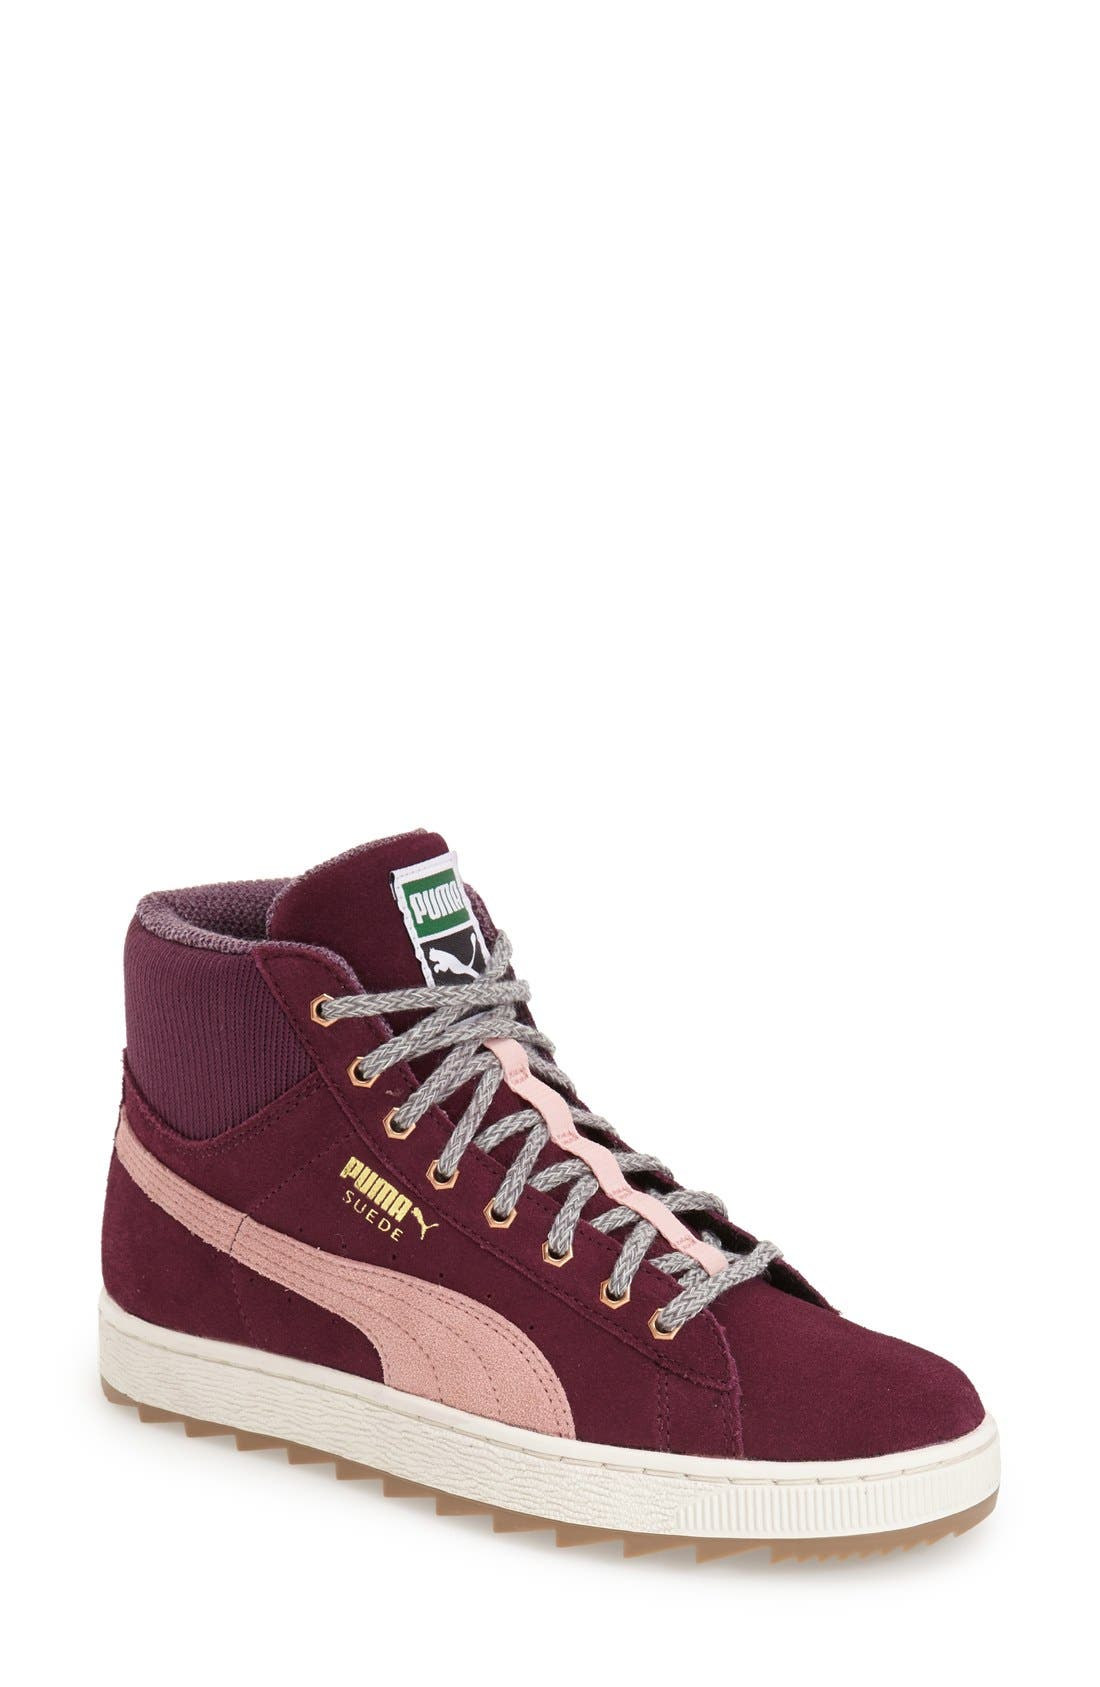 Alternate Image 1 Selected - PUMA 'Suede Rugged' High Top Sneaker (Women)